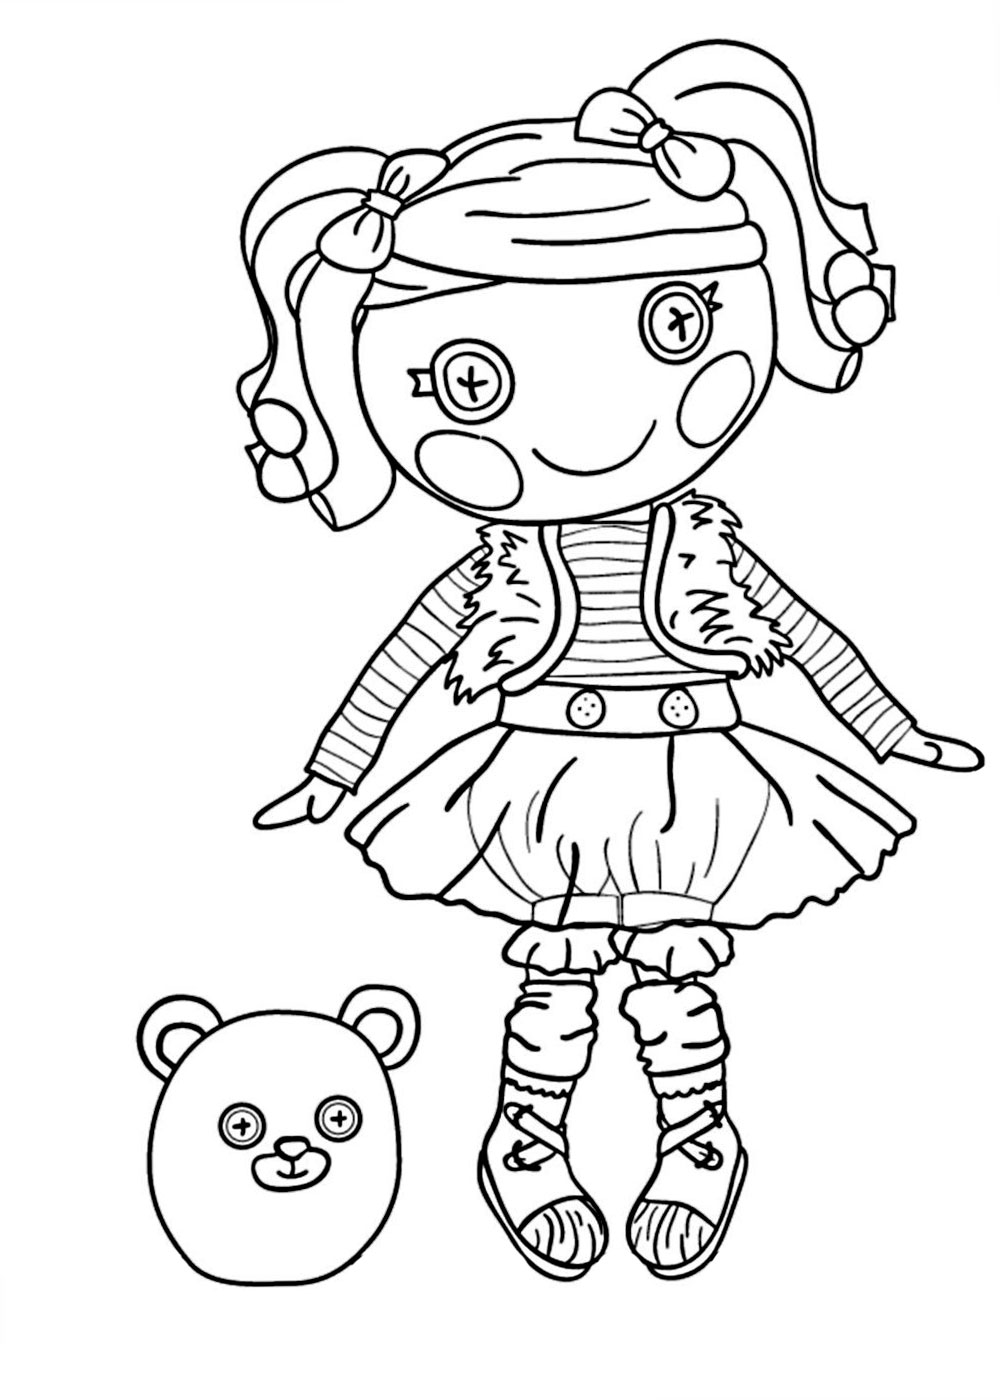 coloring pages lalaloopsy dolls coloring pages of lalaloopsy dolls coloring pages for pages lalaloopsy dolls coloring